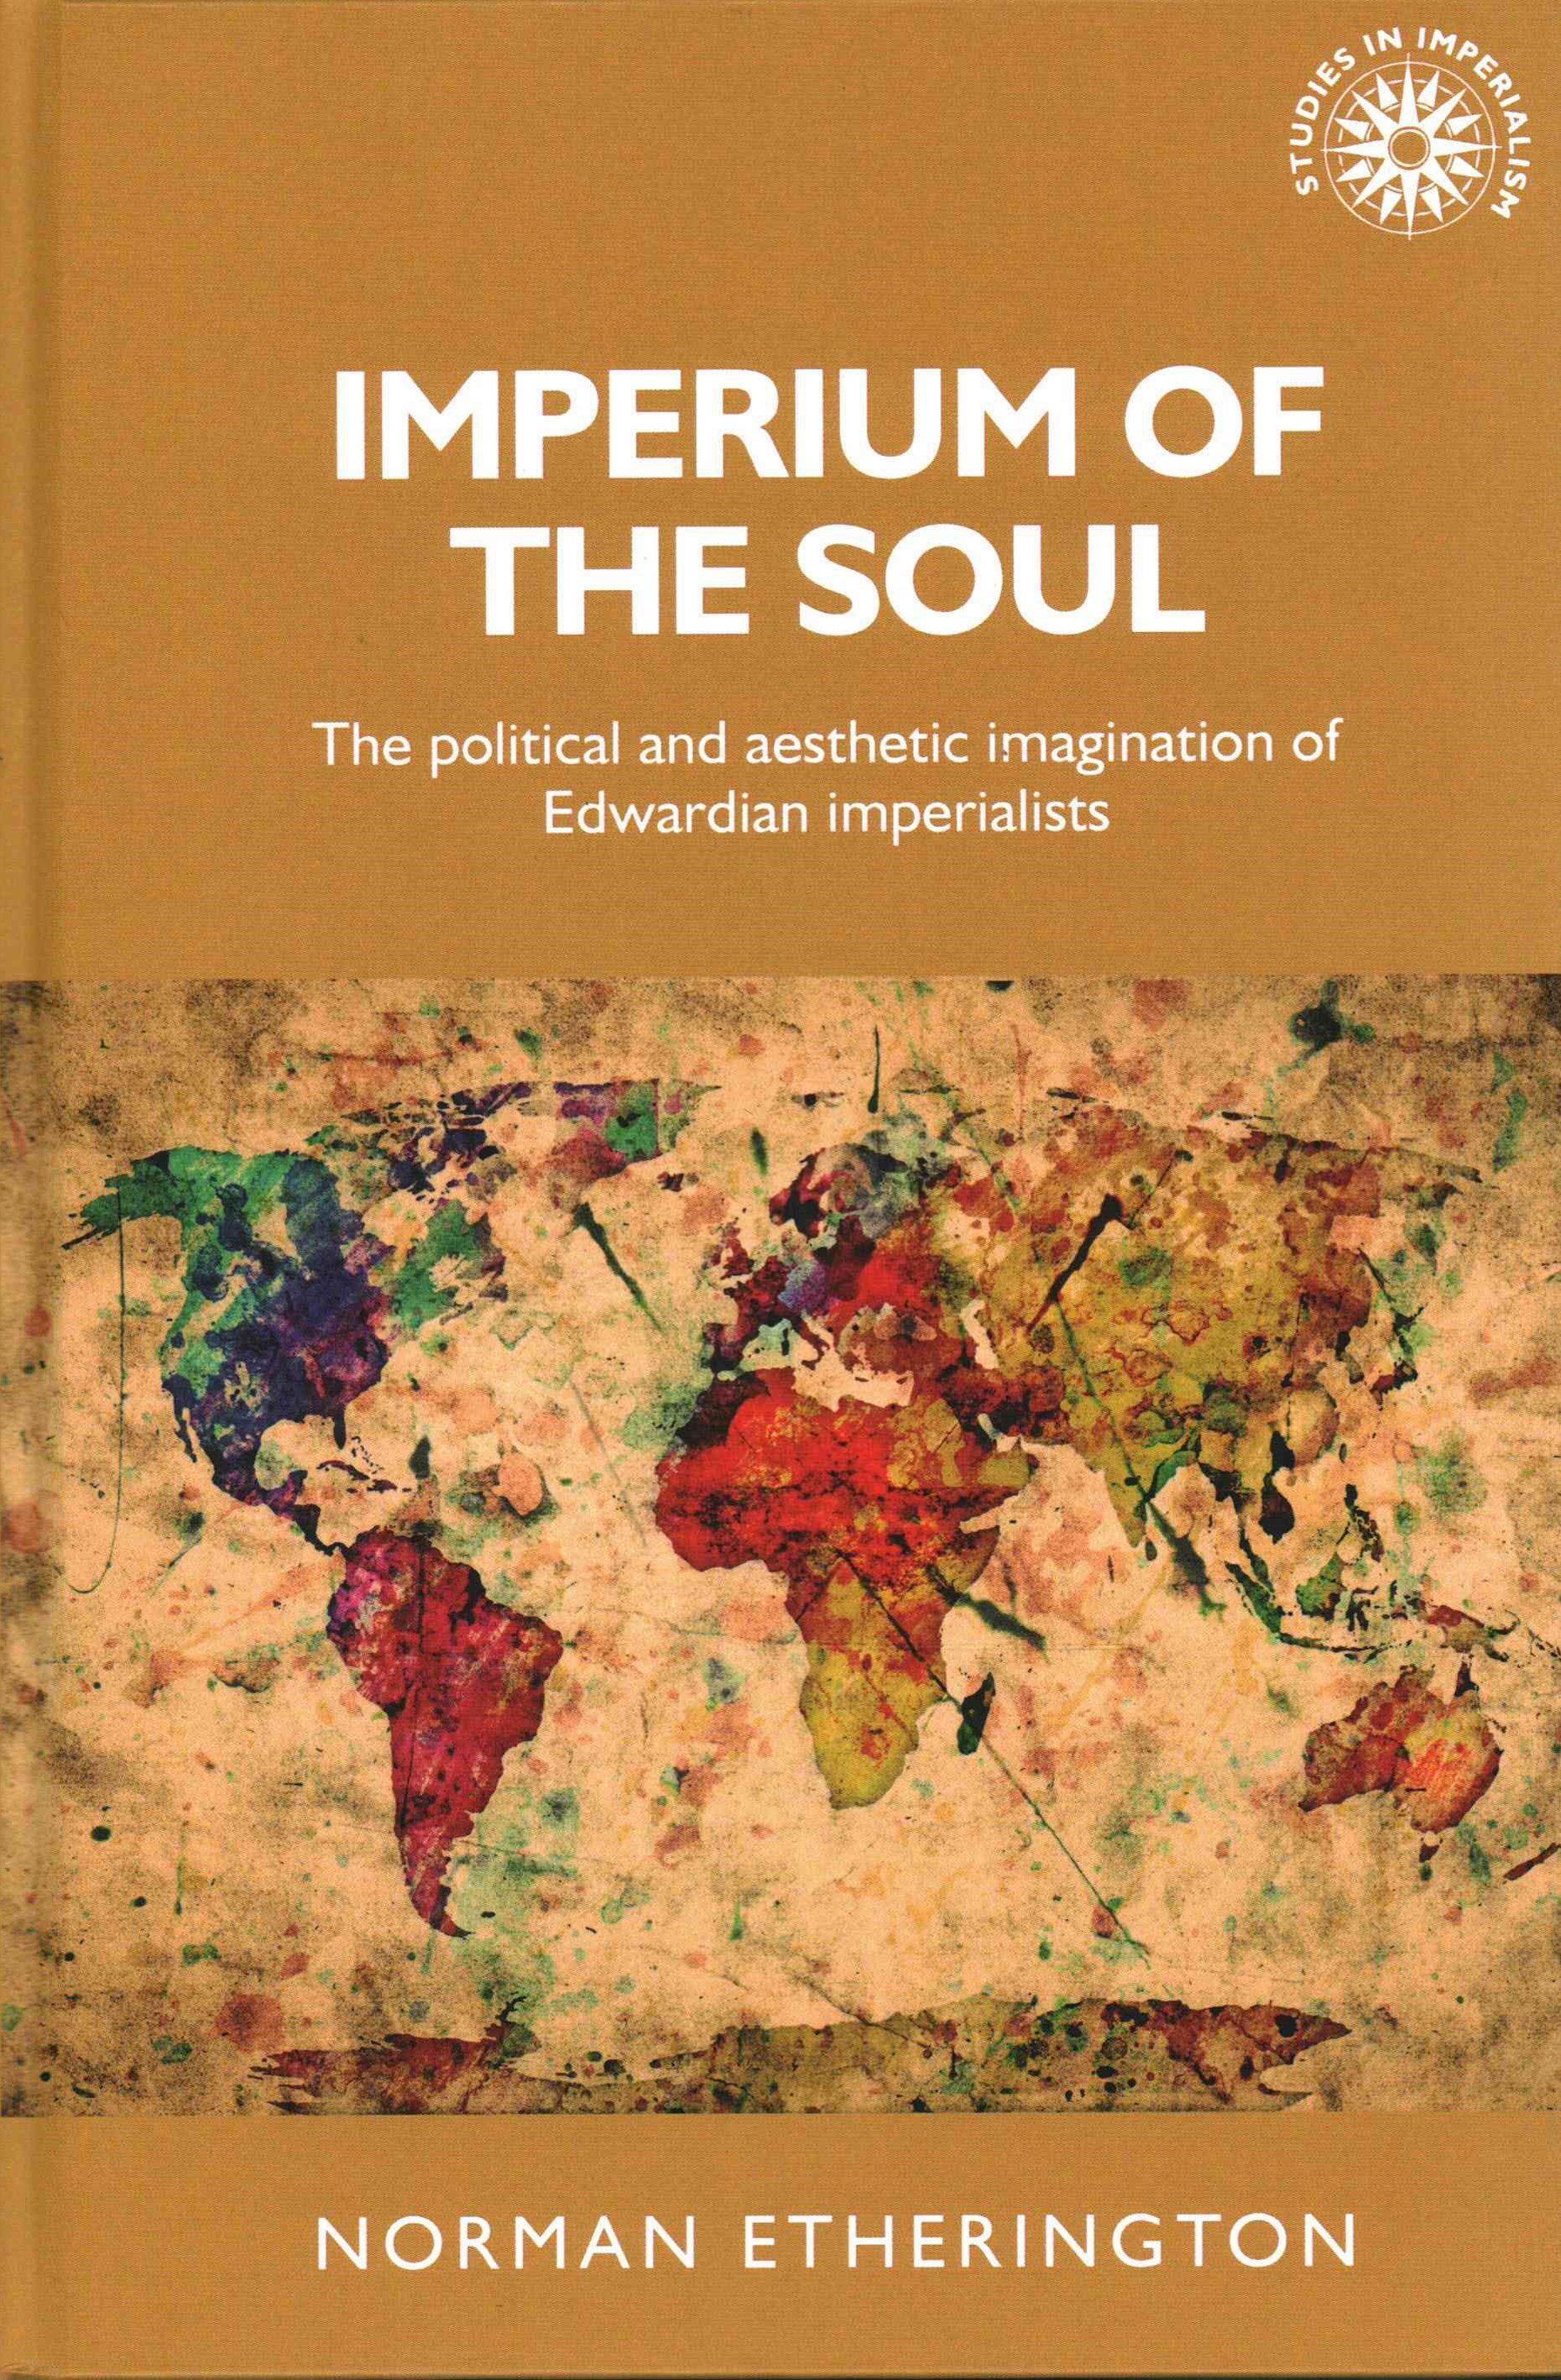 Imperium of the soul: The political and aesthetic imagination of Edwardian imperialists